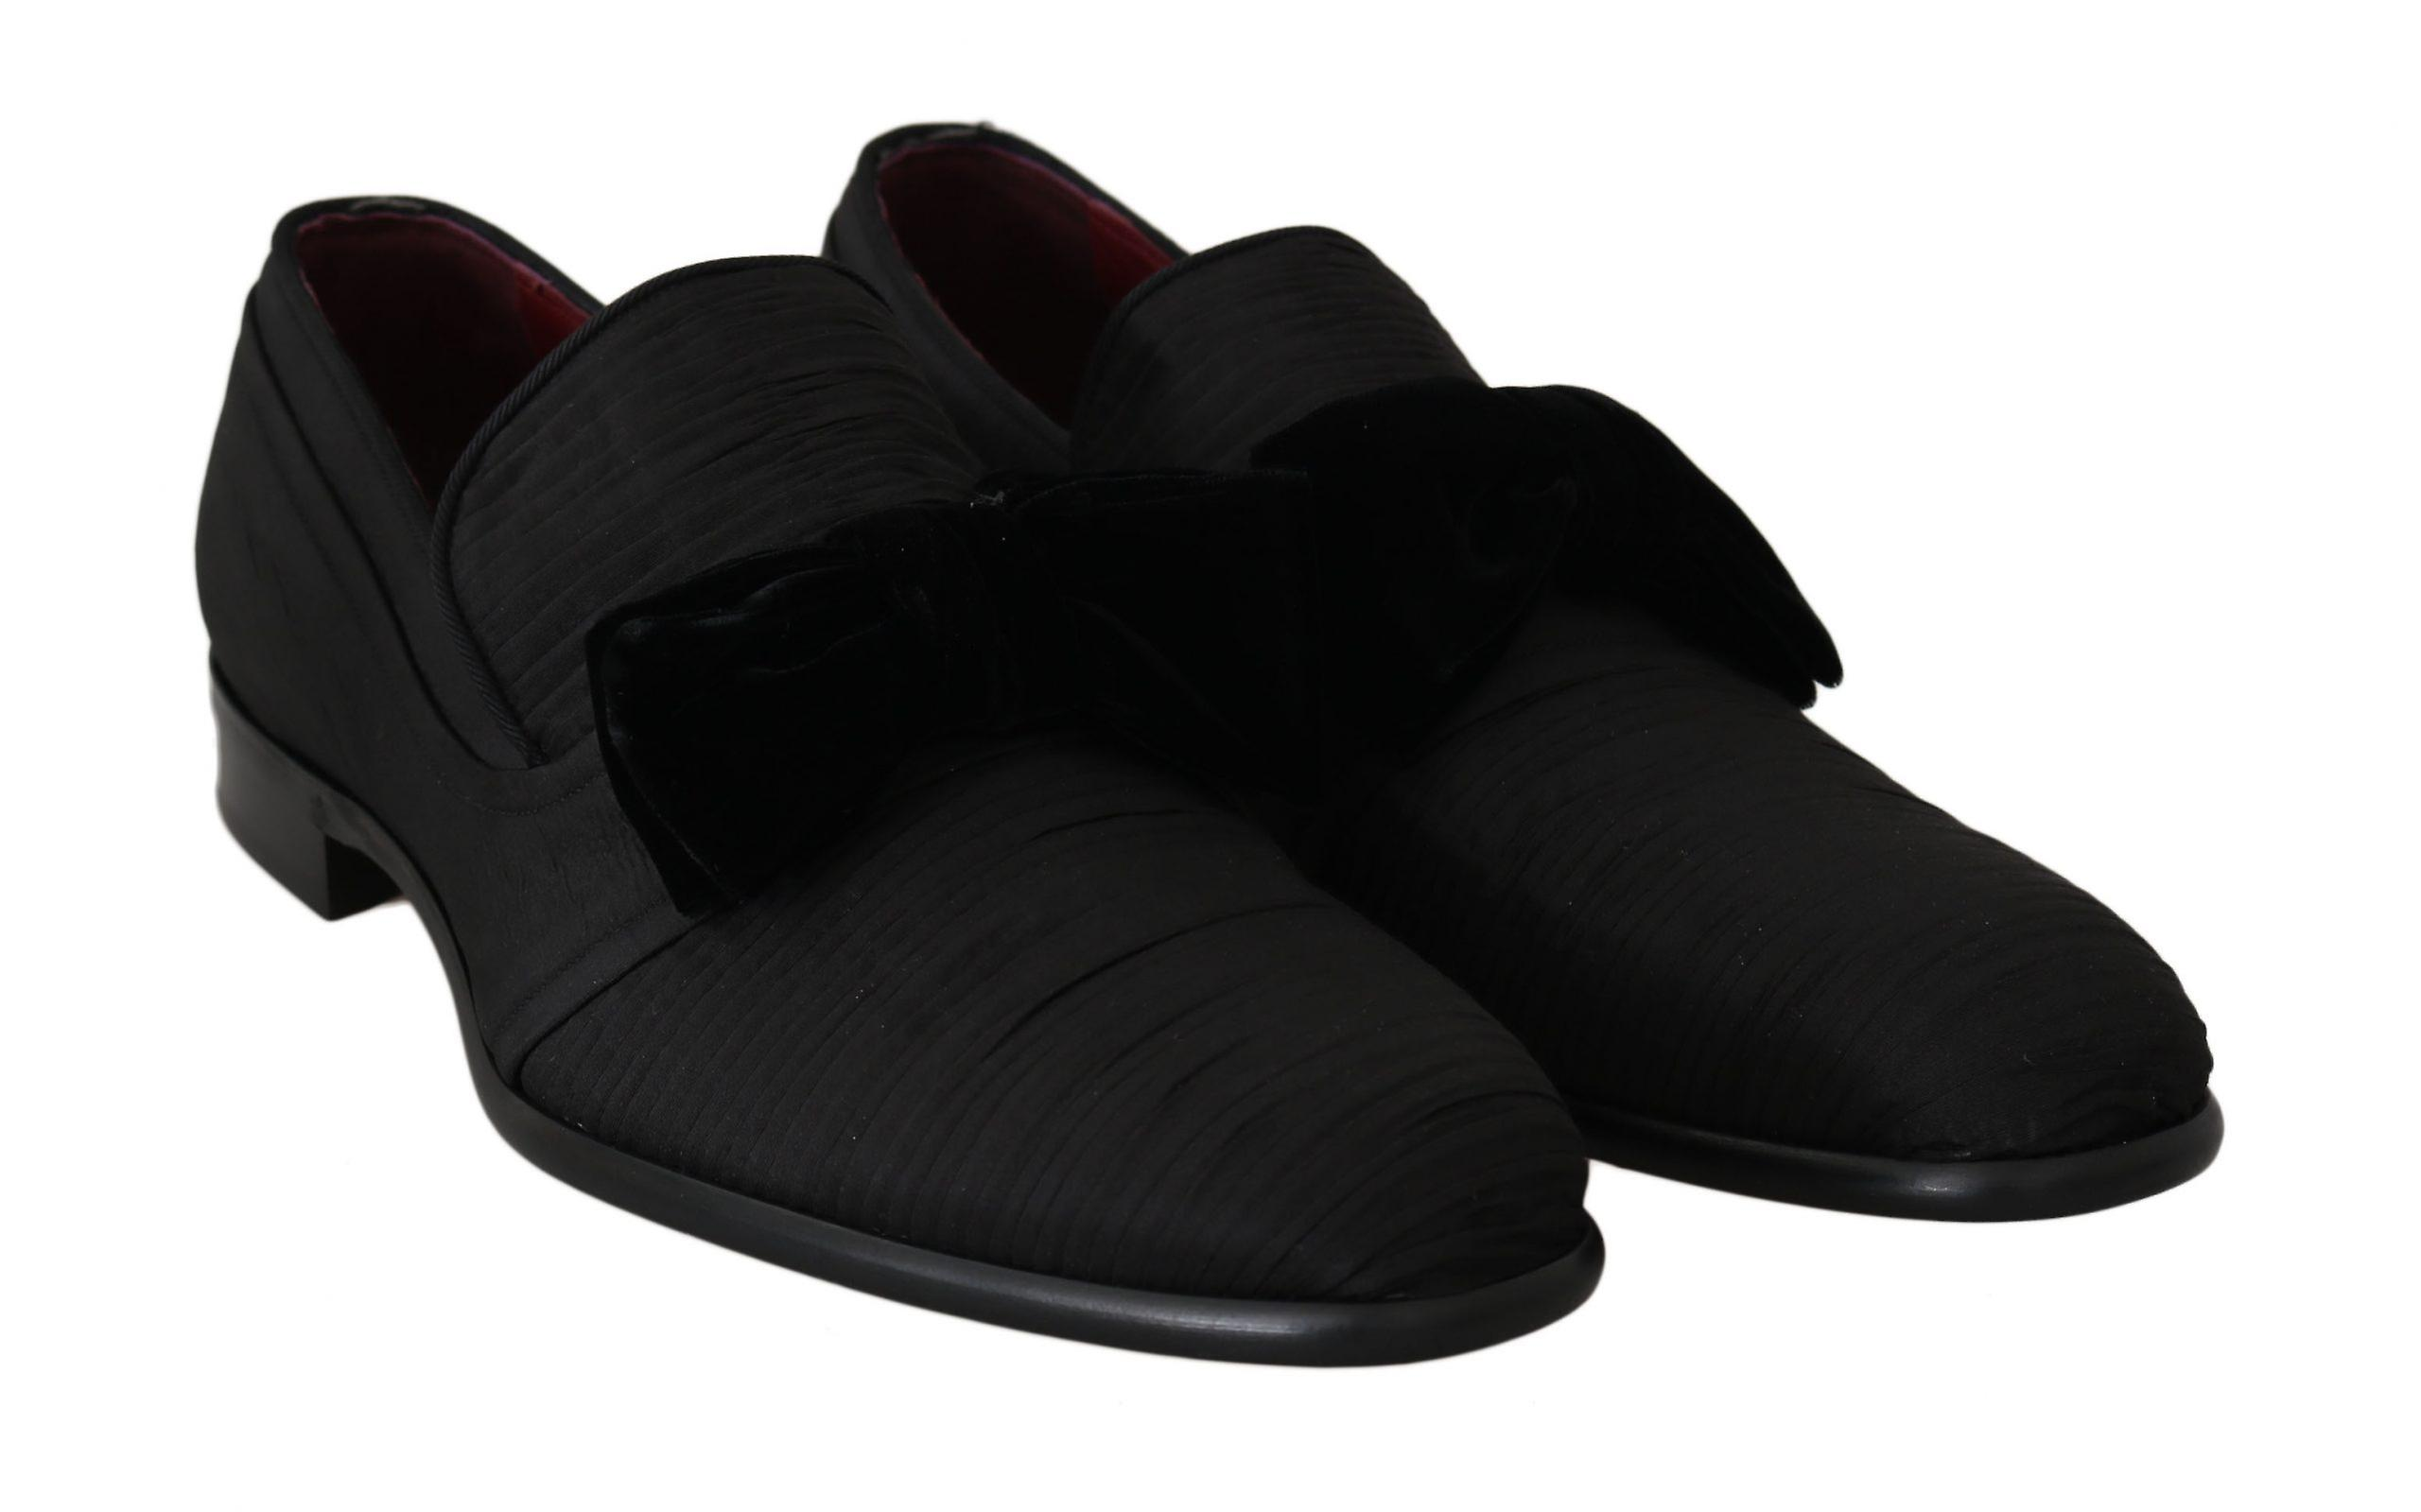 Dolce & Gabbana Black Silk Velvet Bow Dress Formal Shoes MV2288-43